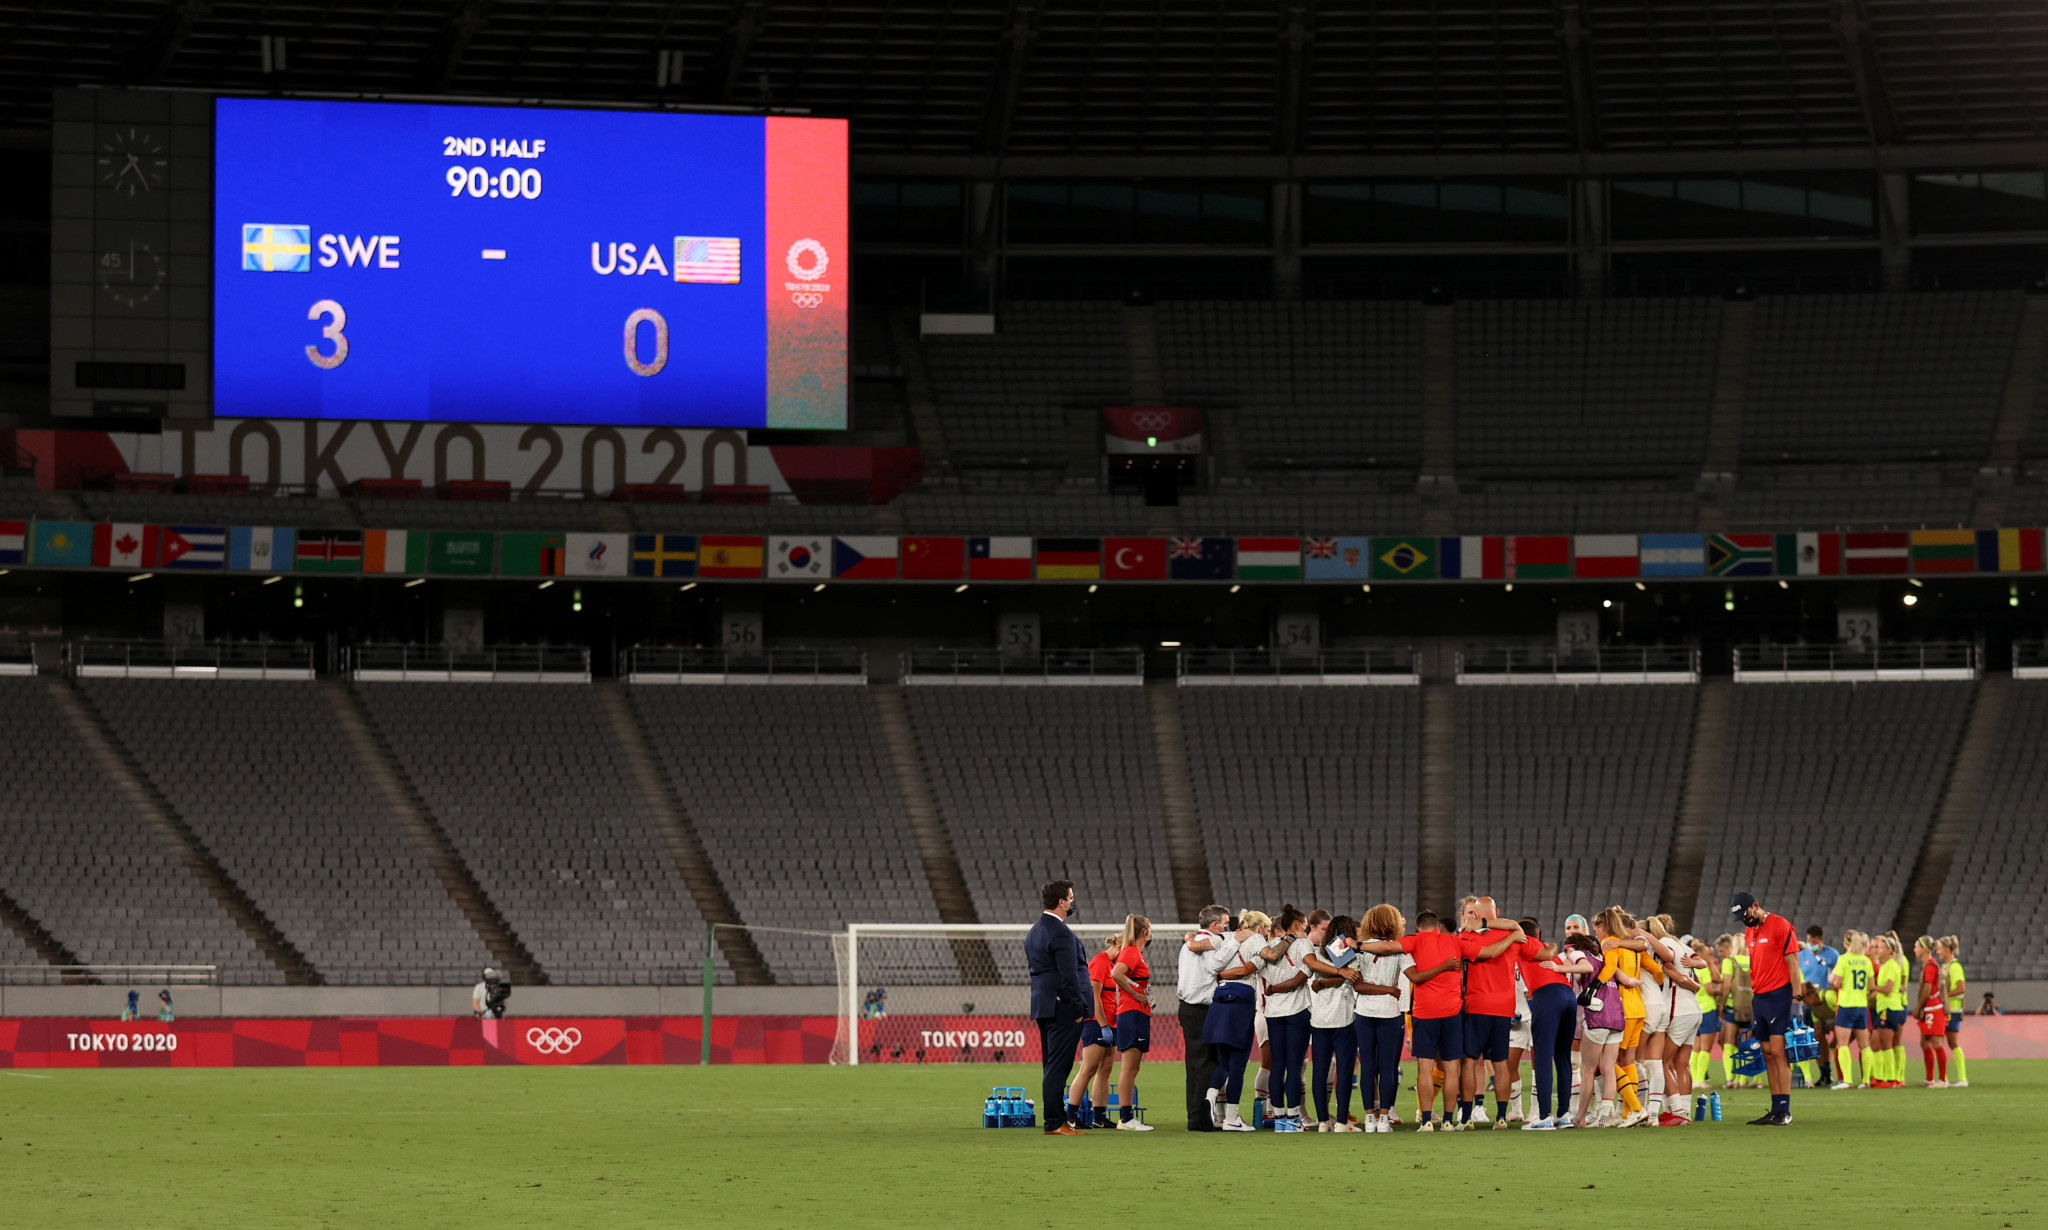 Sweden shocked the United States with a 3-0 win at Tokyo Stadium ©Getty Images